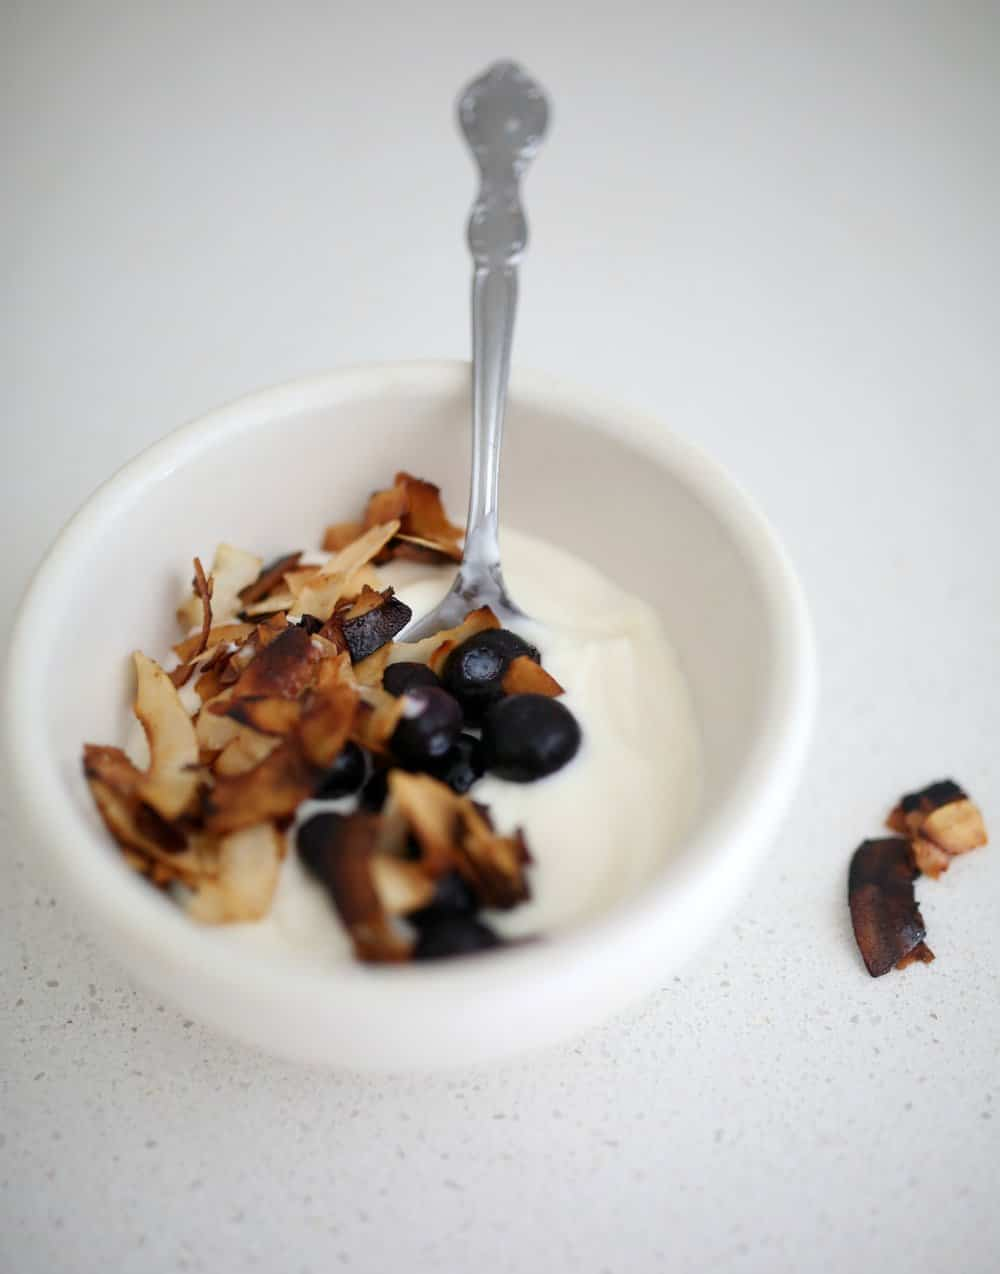 yogurt topped with toasted coconut chips and blueberries in a white bowl with a metal spoon